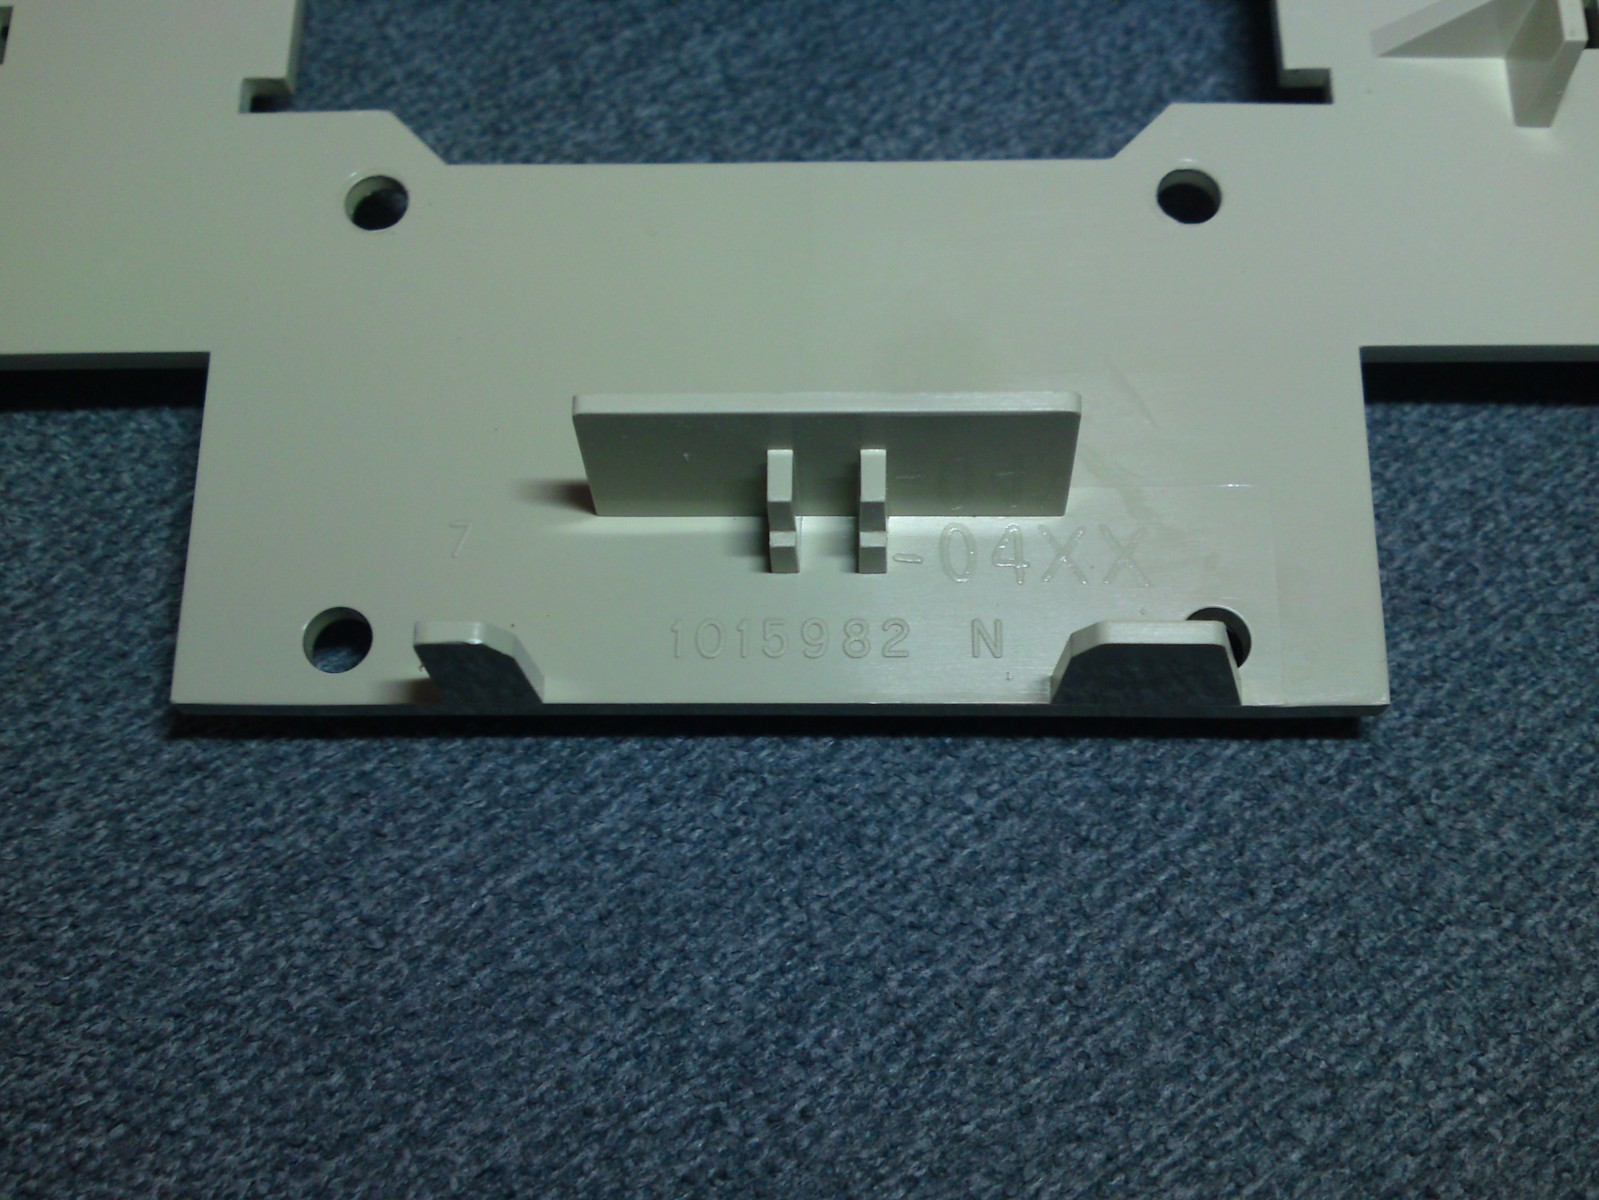 TI-99/4A GROM port under-side with part number